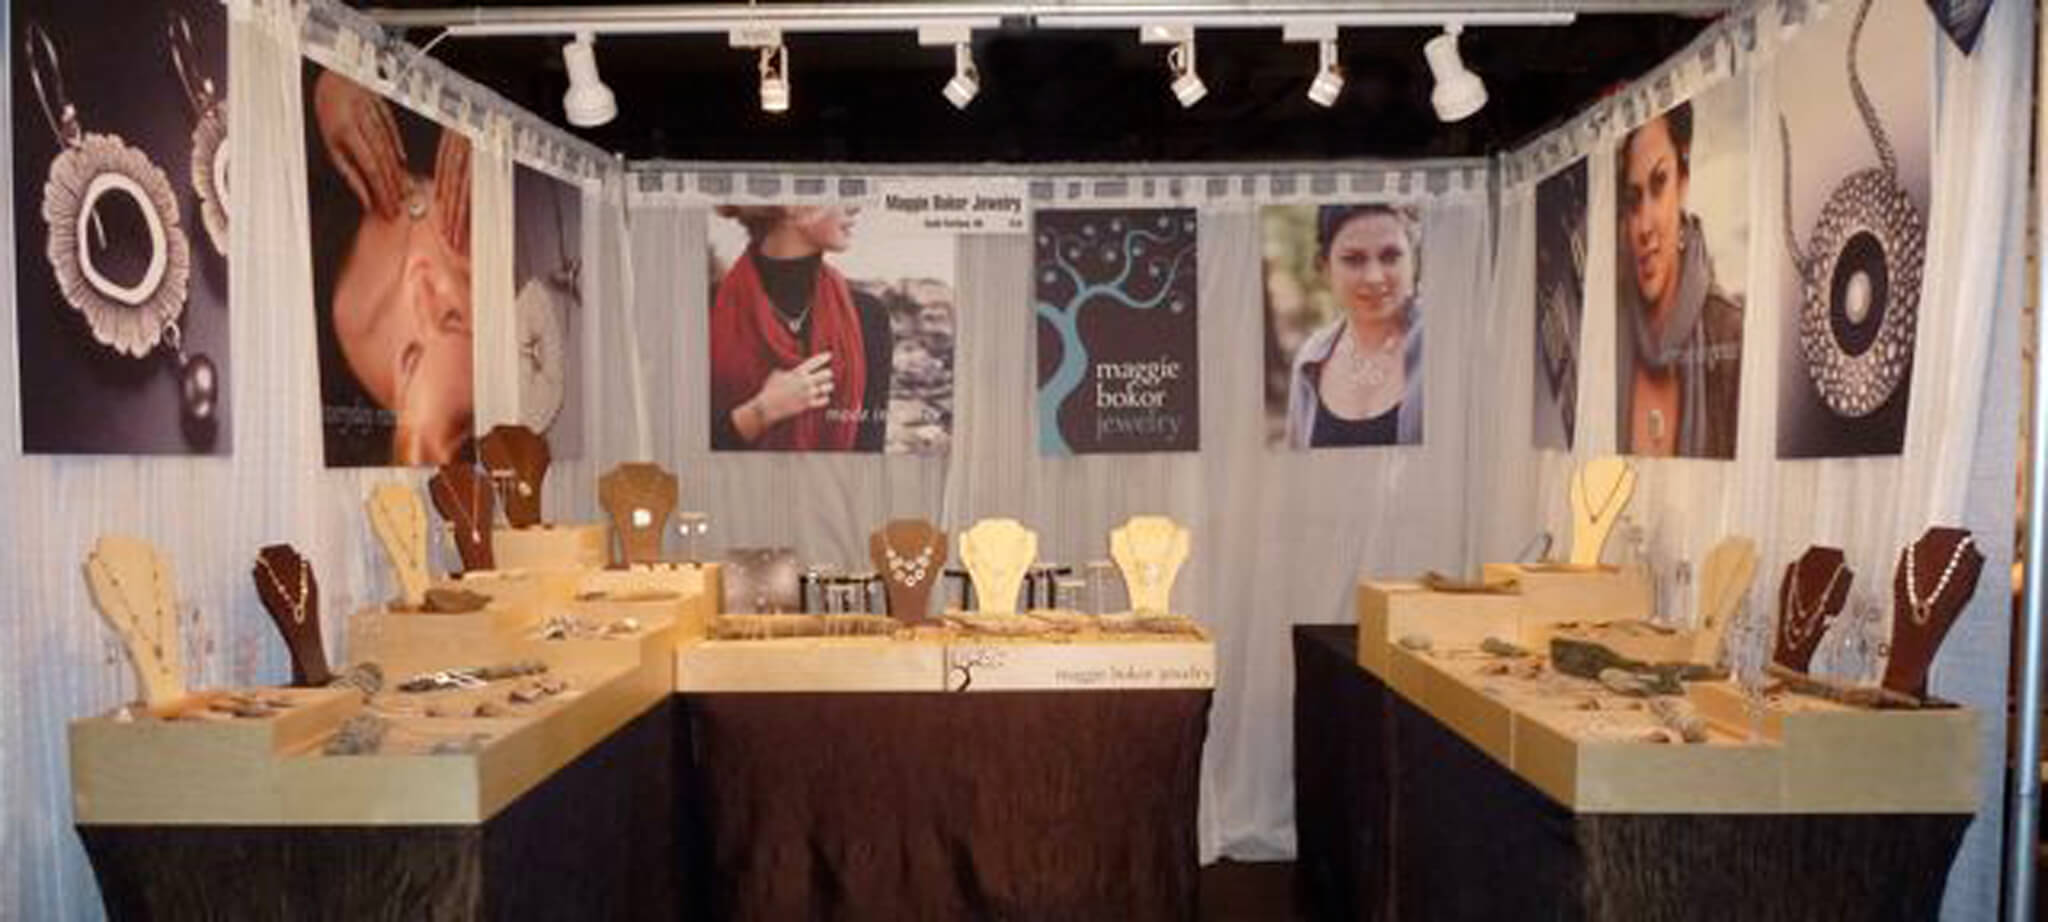 modular booth trays with logo for Maggie Bokor Jewelry | Design by ChrisAndAndyDesign.com